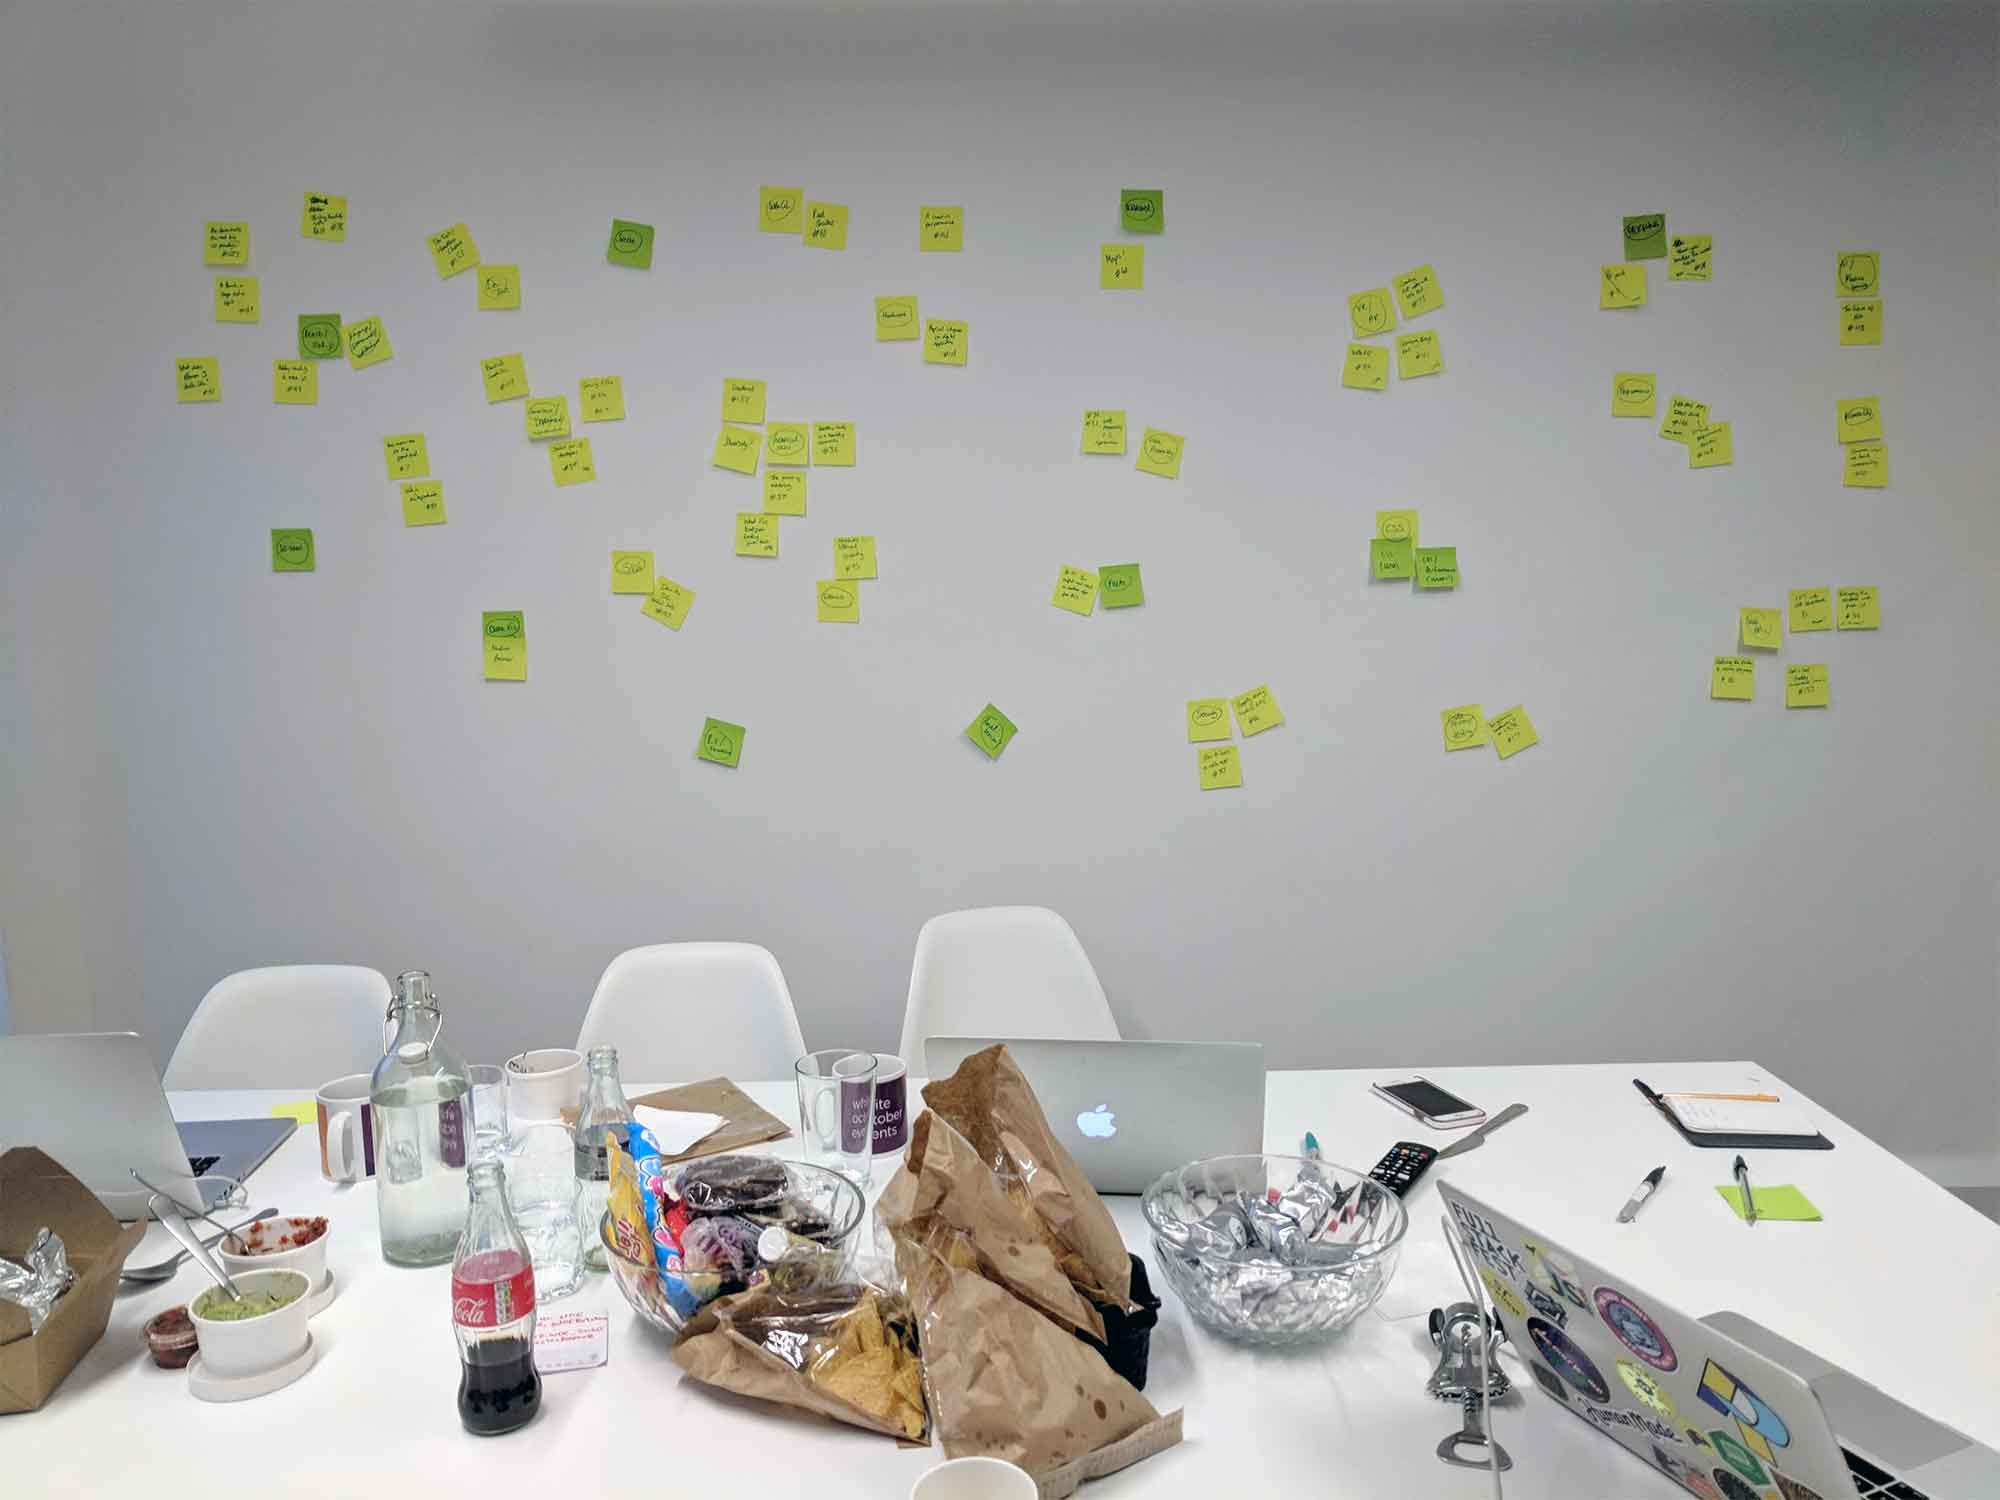 A wall of post-it notes in front of a table holding laptops and snacks